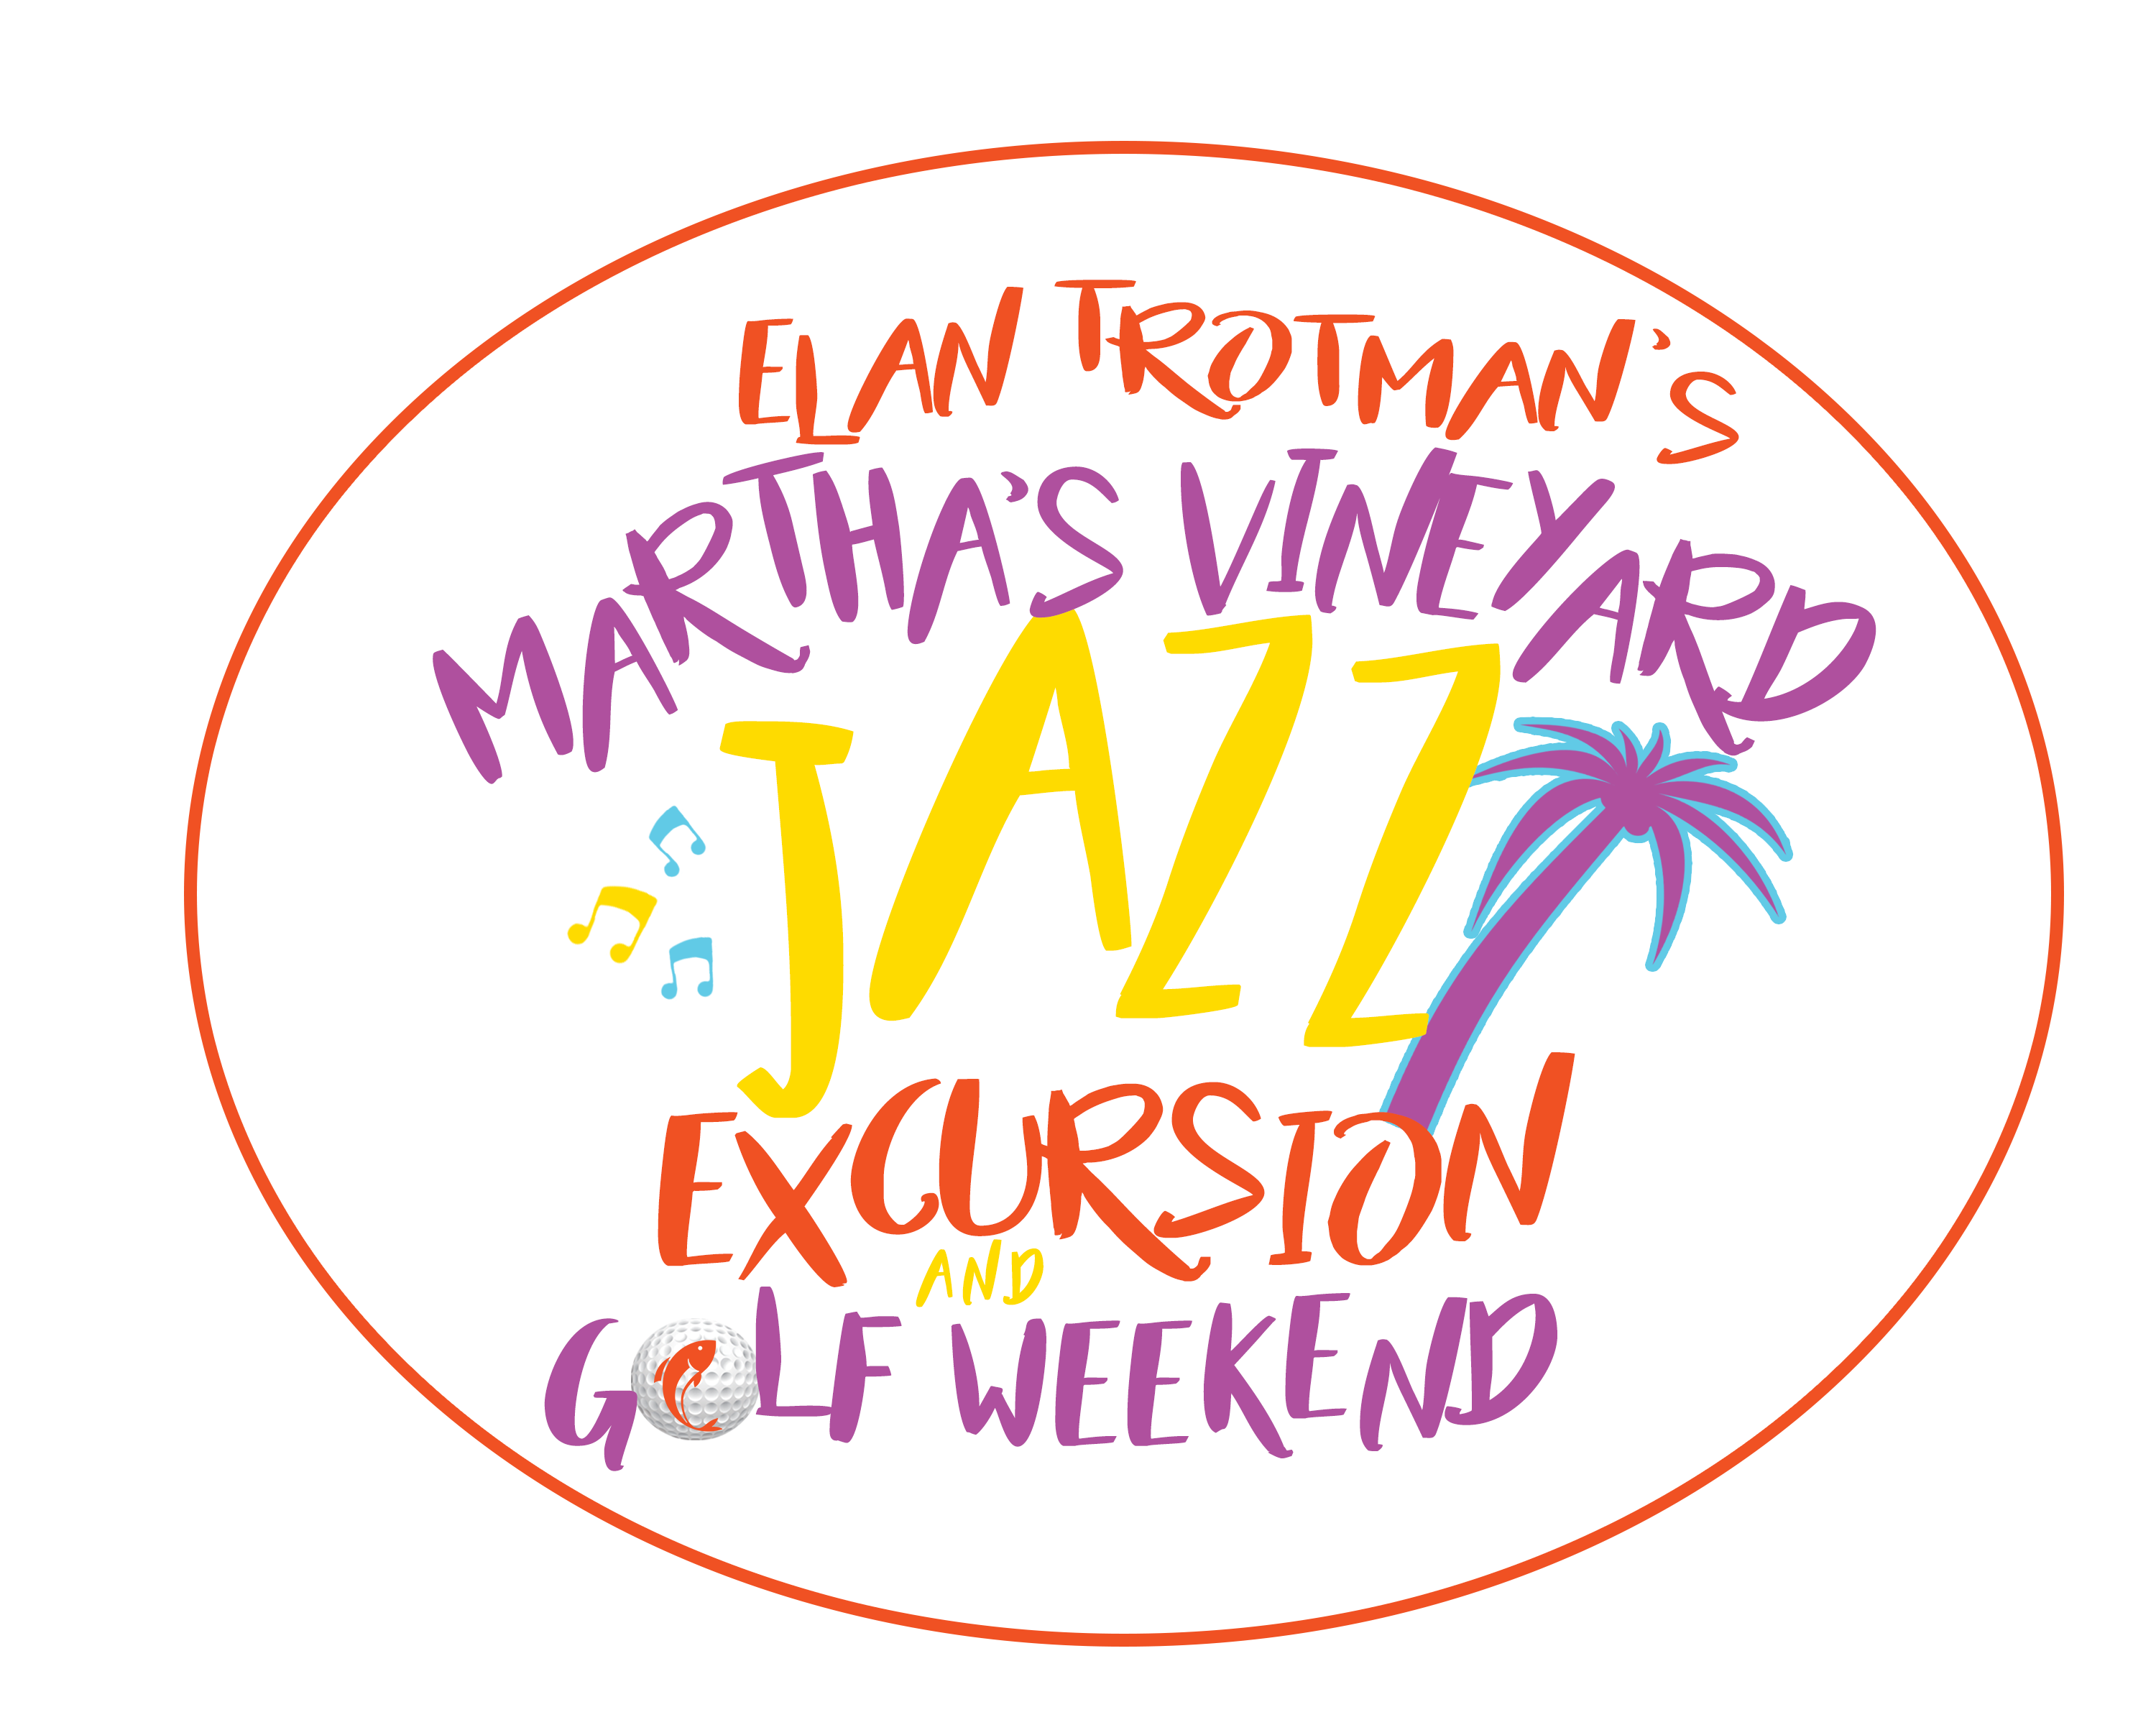 Martha's Vineyard Jazz Excursion & Golf Weekend